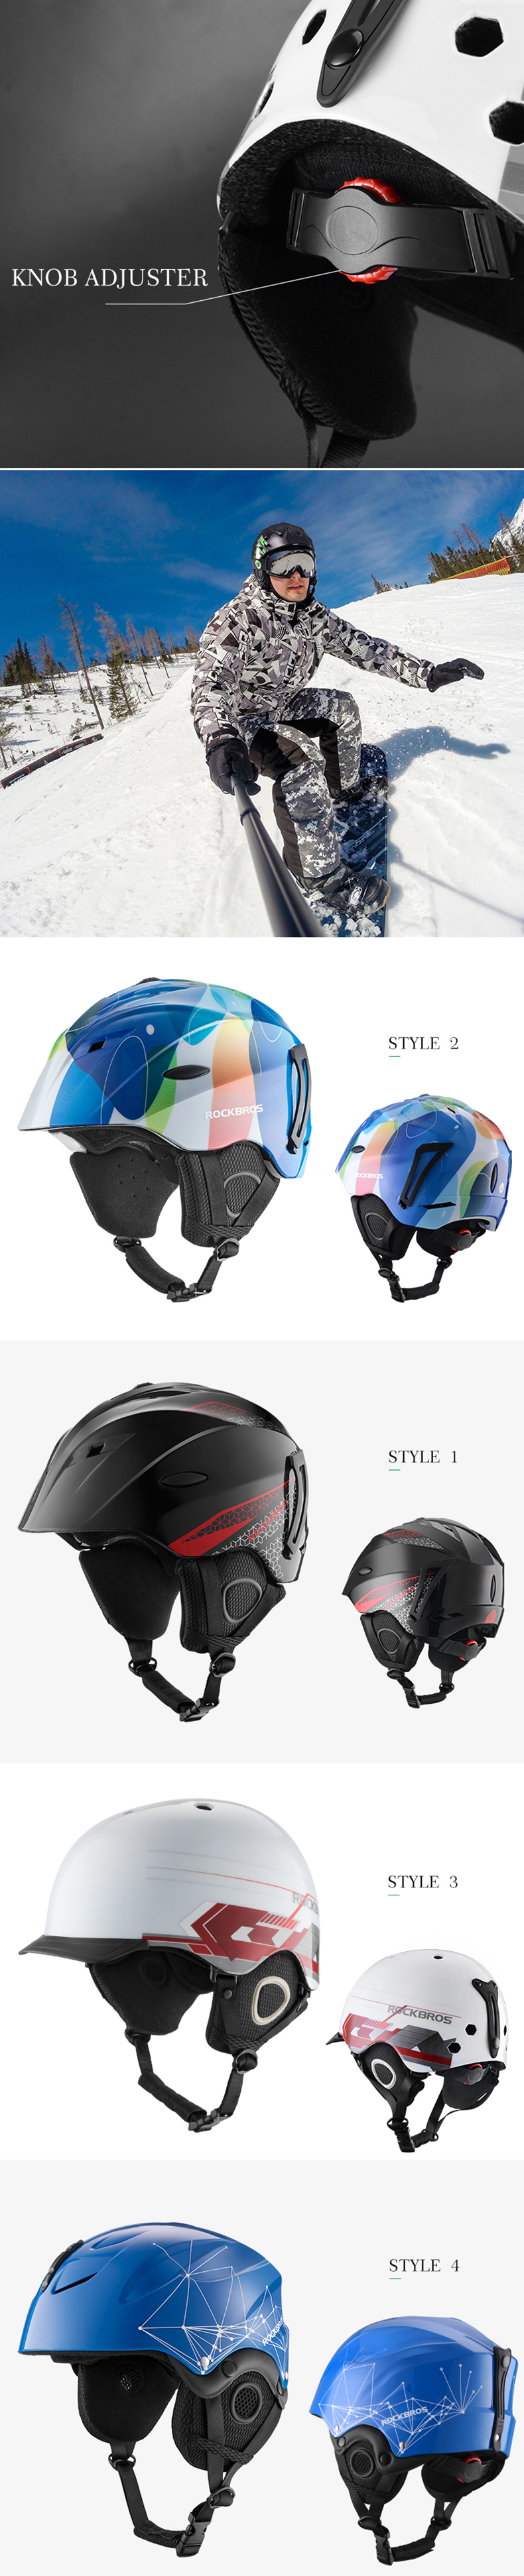 ROCKBROS Bike Integral Cast Snowboard Helmet Thermal Ultralight Breathable Cycling Skiing Helmet